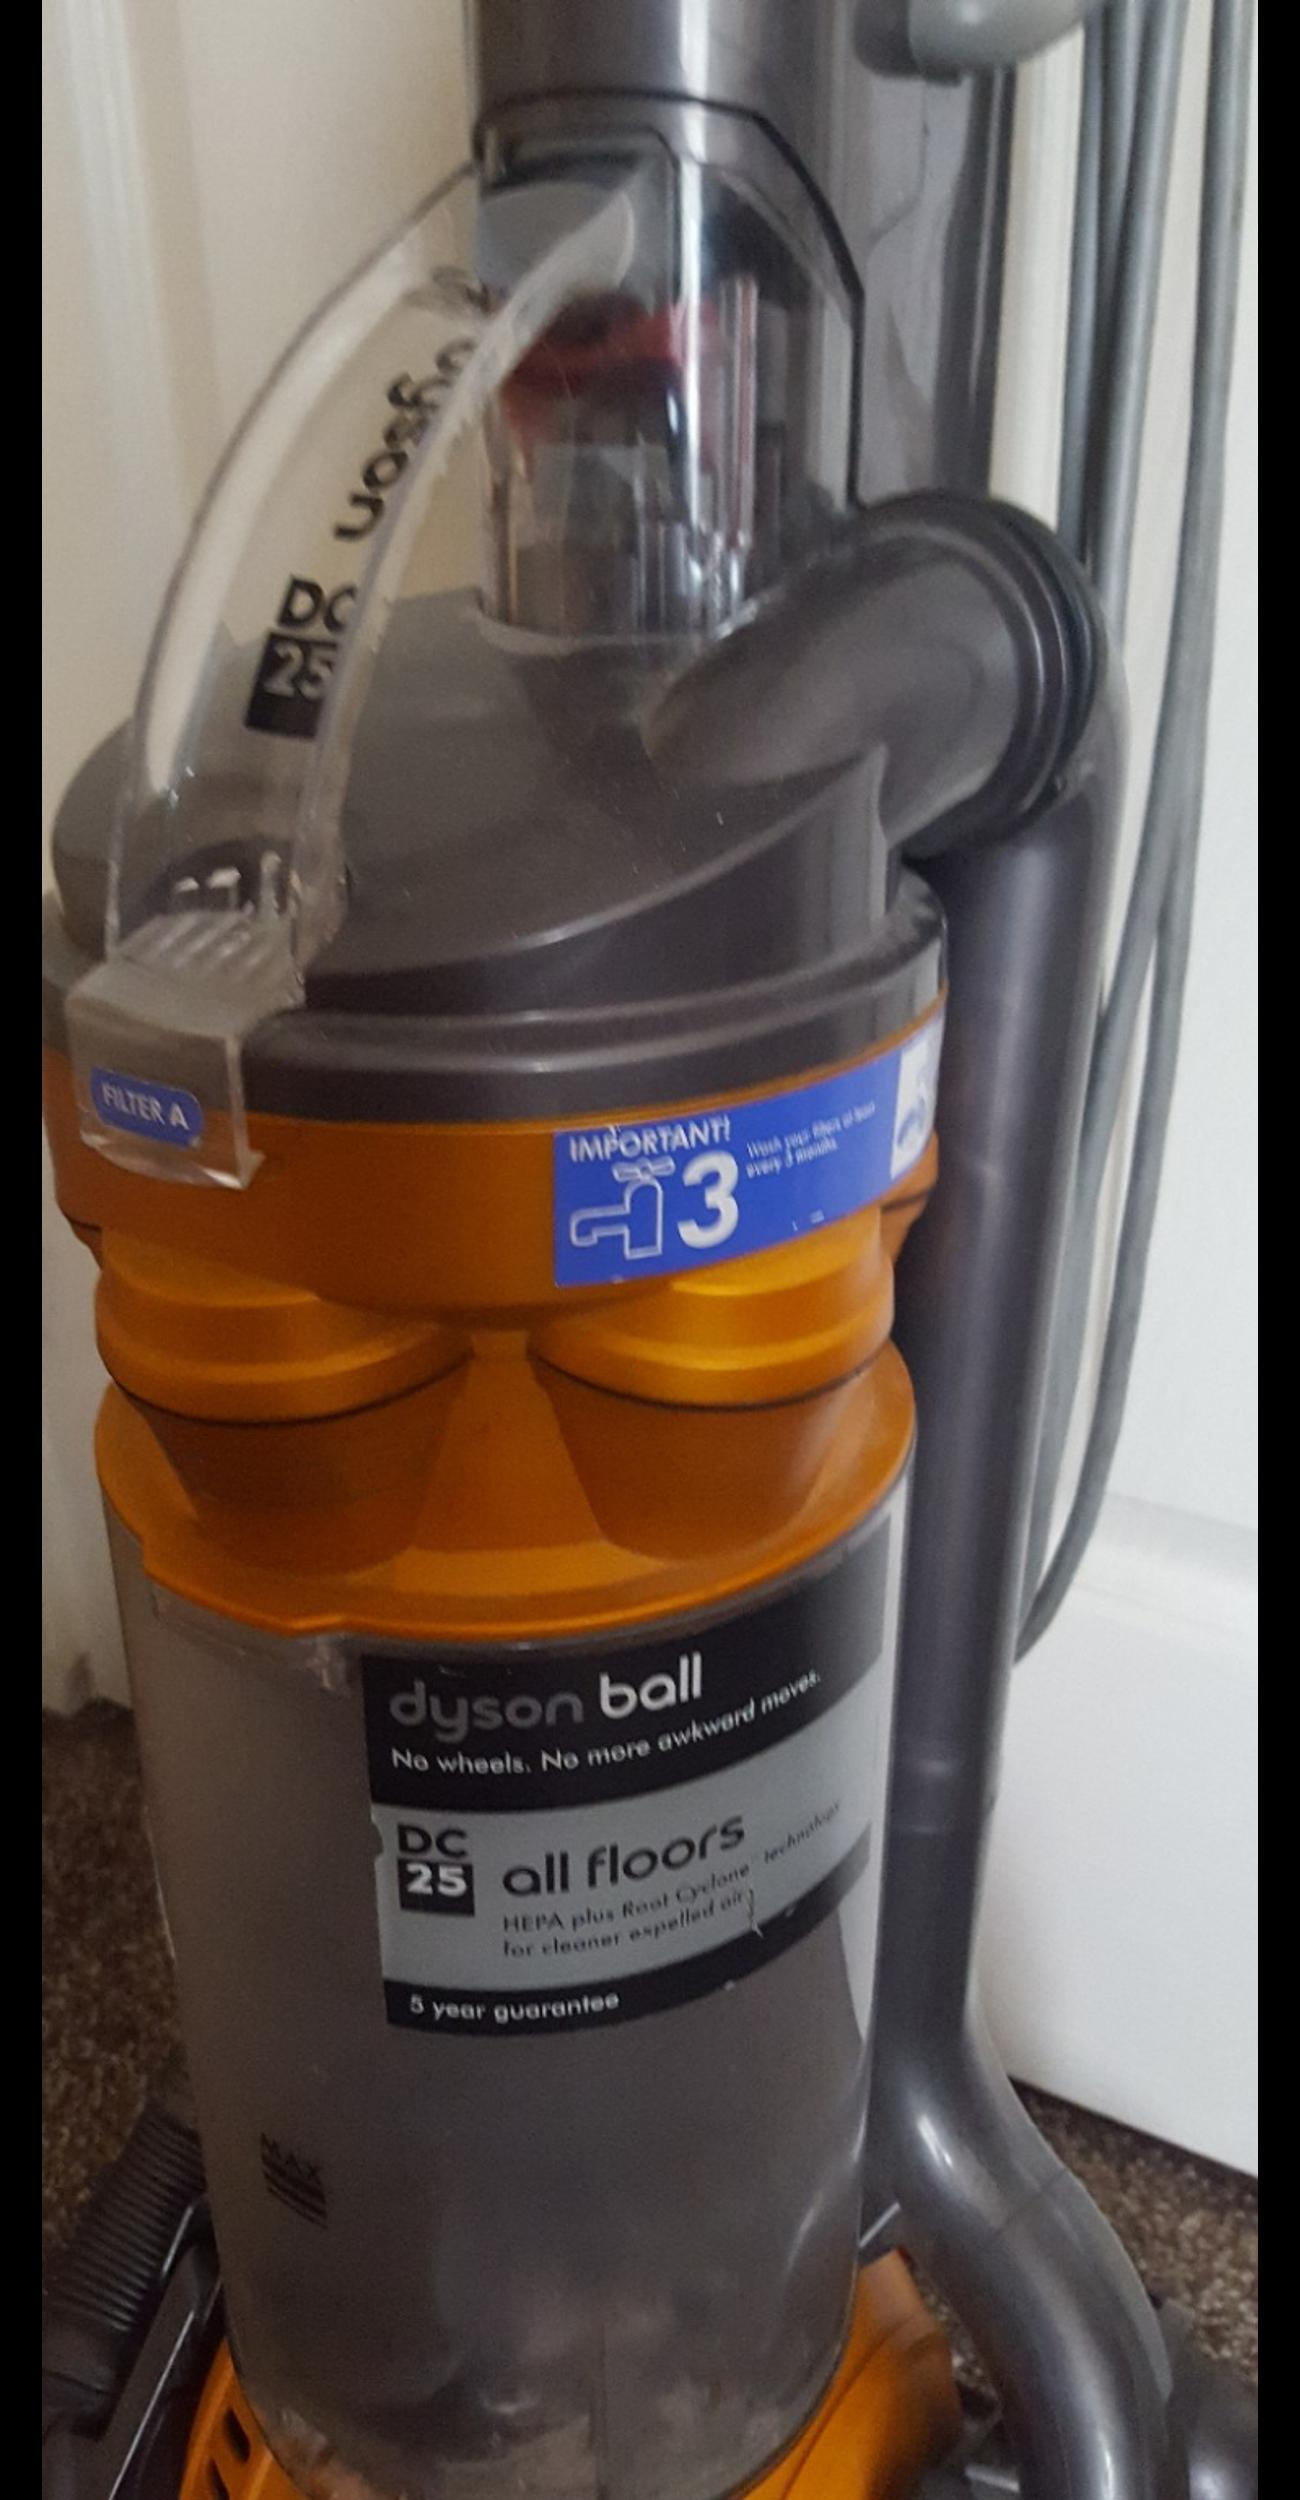 Dyson Ball DC25 hoover vacuum cleaner in BL3 Bolton for